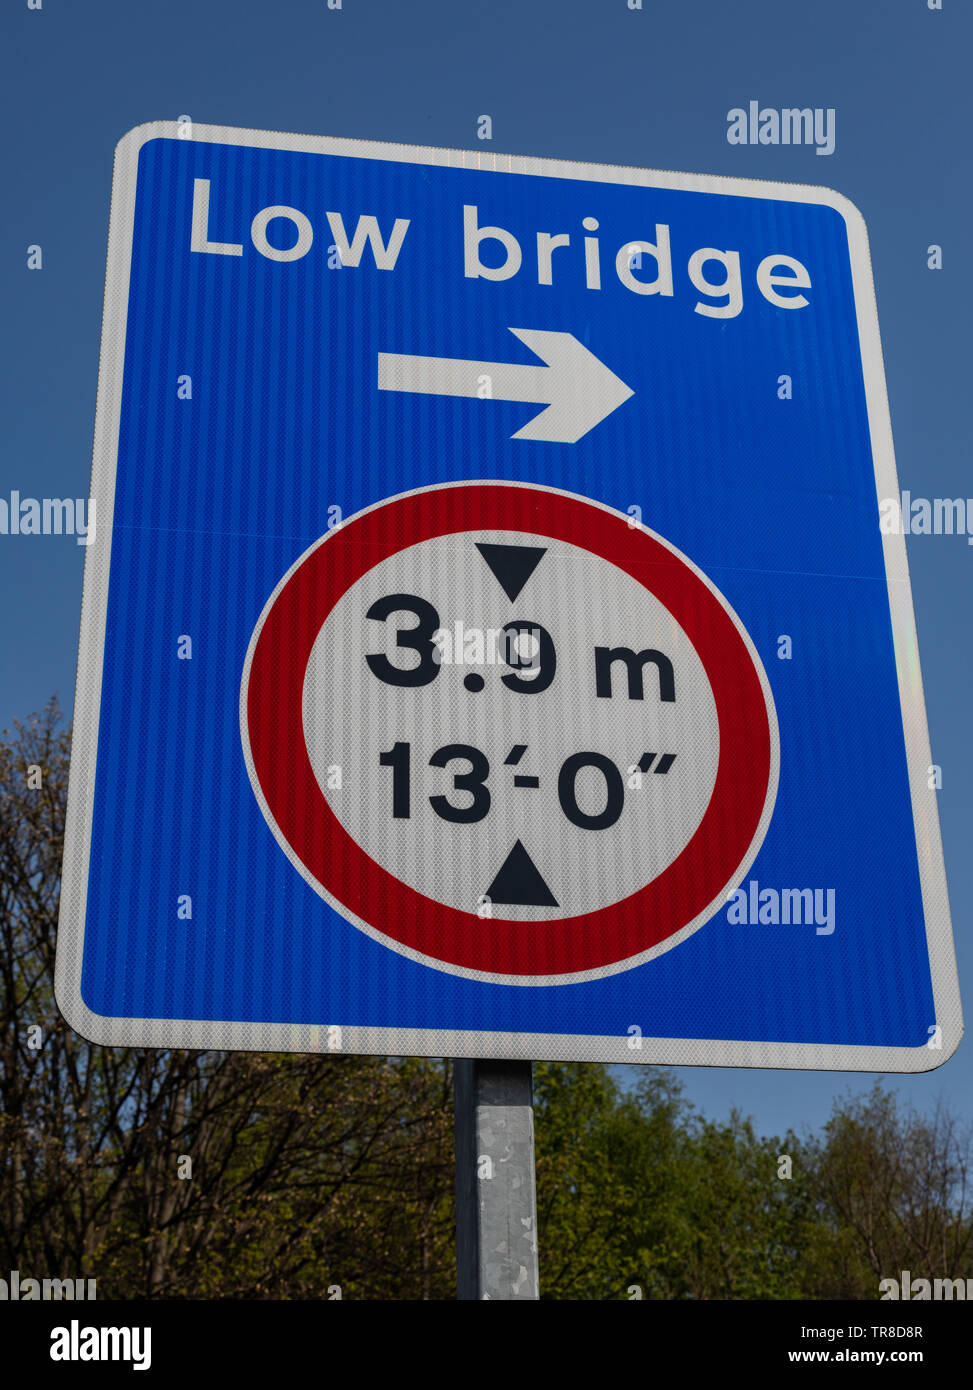 Sign indicating low bridge direction and height Wirral April 2019 Stock Photo